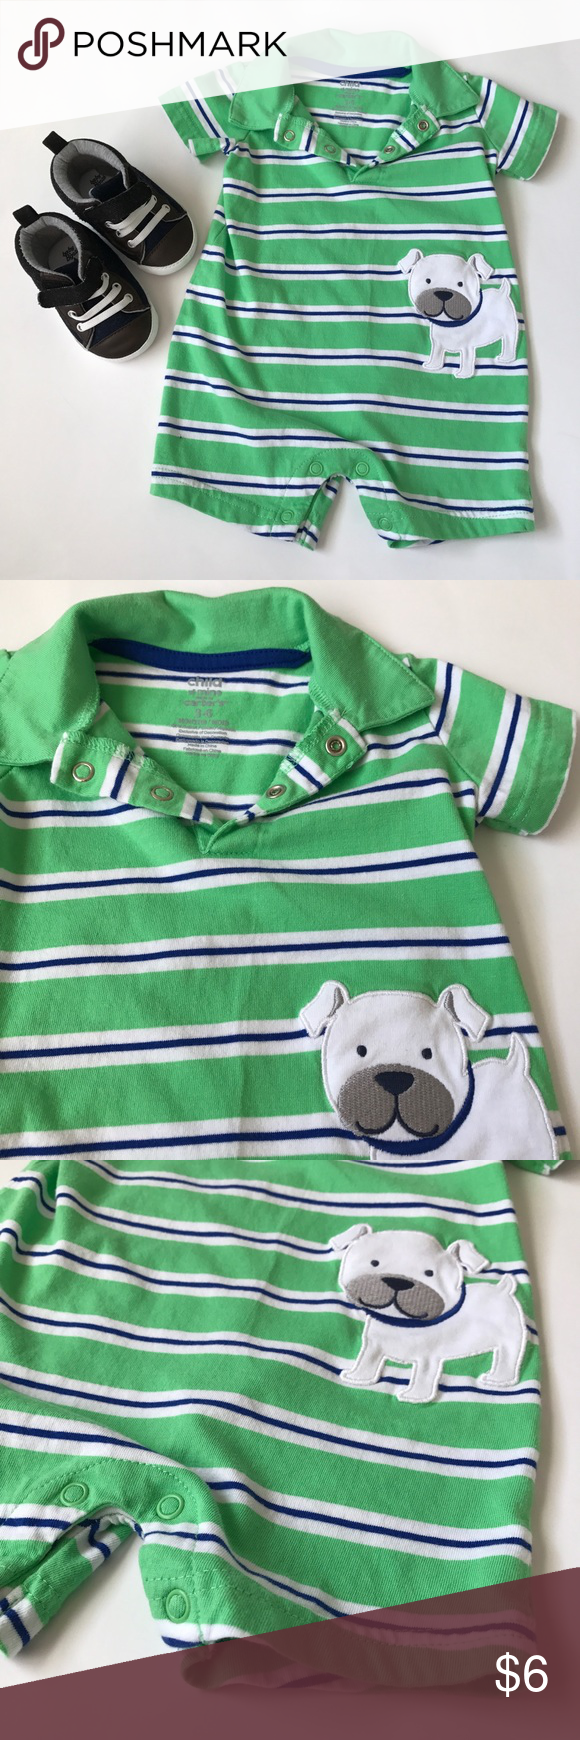 Me and my doggy fit Child of Mine one piece with a cute dog character. Blue and white stripes over a lime green. Collared with a 2 button snap cluster at the chest and 4 button snap closure at the legs. Washed in Dreft hypoallergenic detergent. EUC.  Size: 3-6 months Child of Mine One Pieces